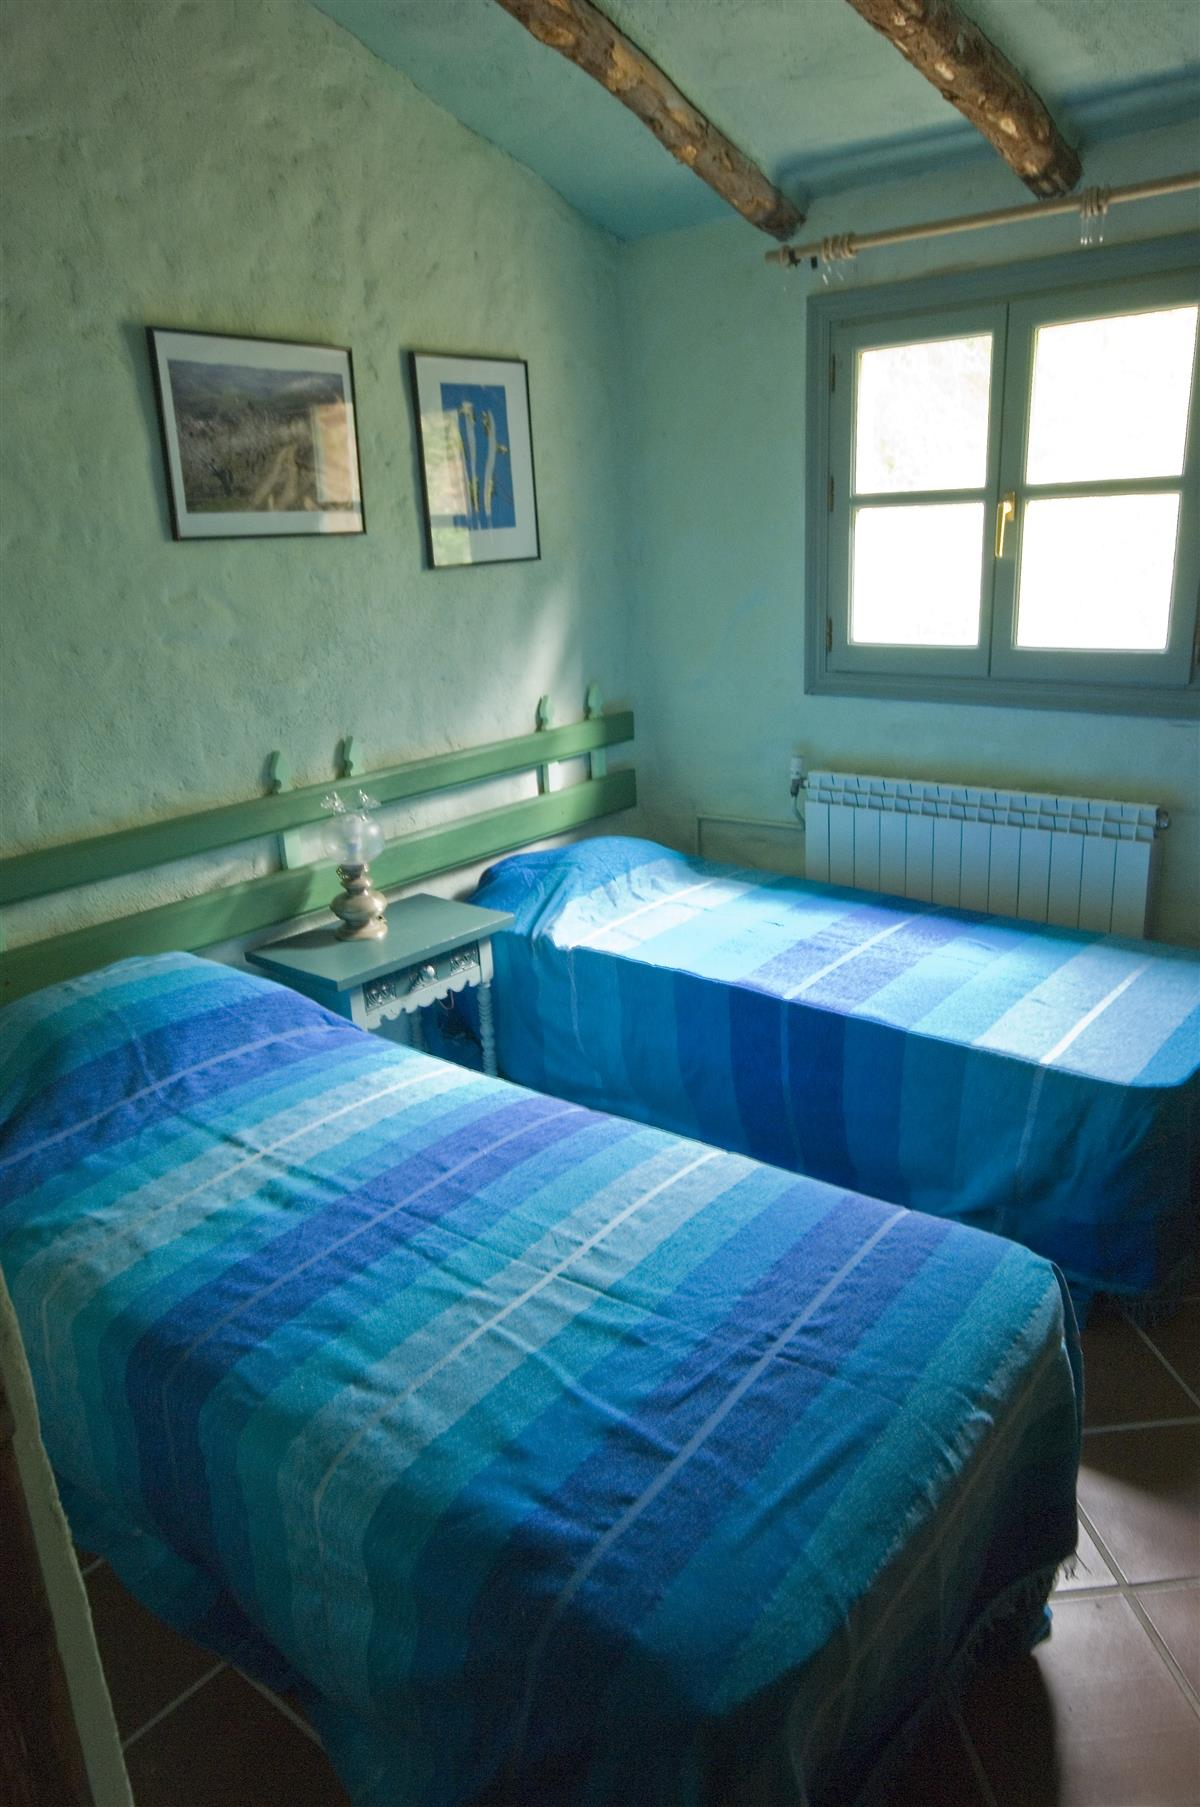 A typical twin bedded room